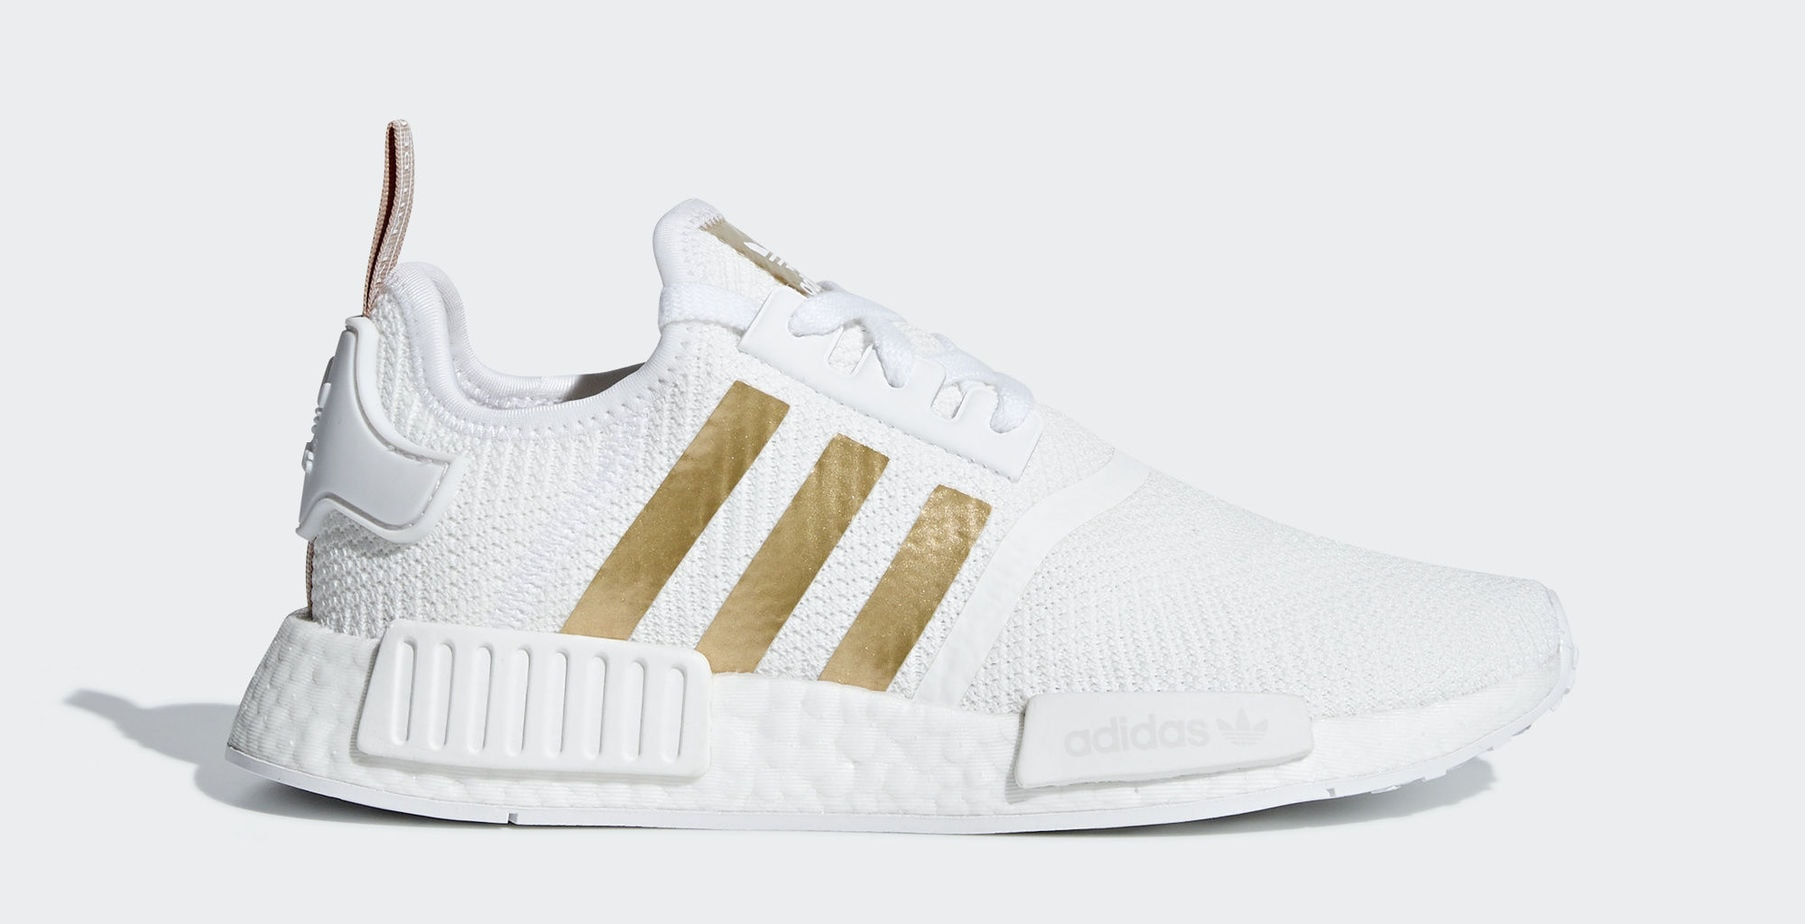 best price adidas nmd runner purple gold 59a9c 7ead1